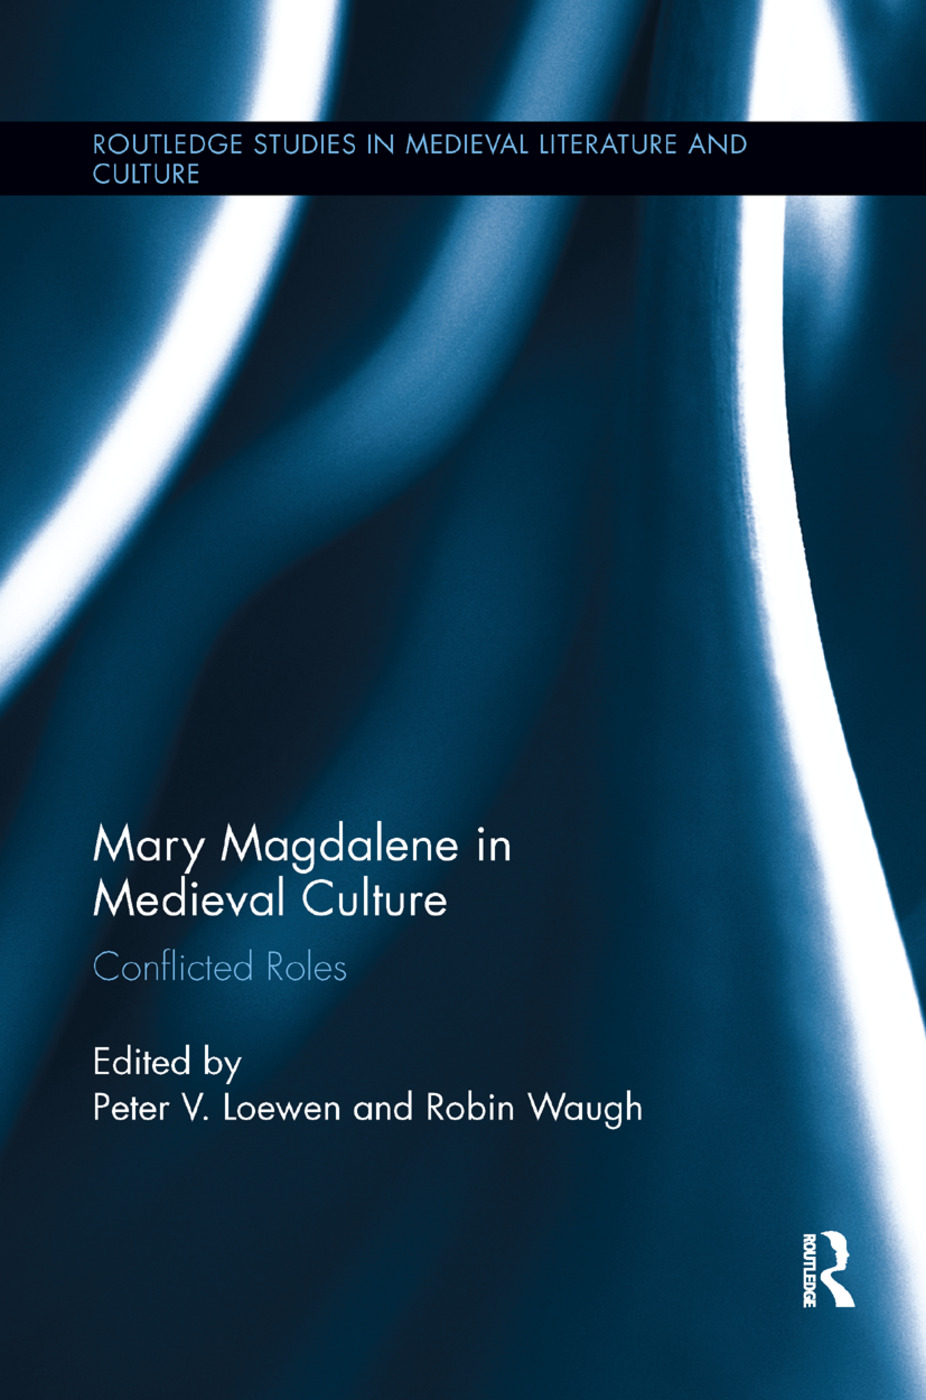 Mary Magdalene in Medieval Culture: Conflicted Roles book cover